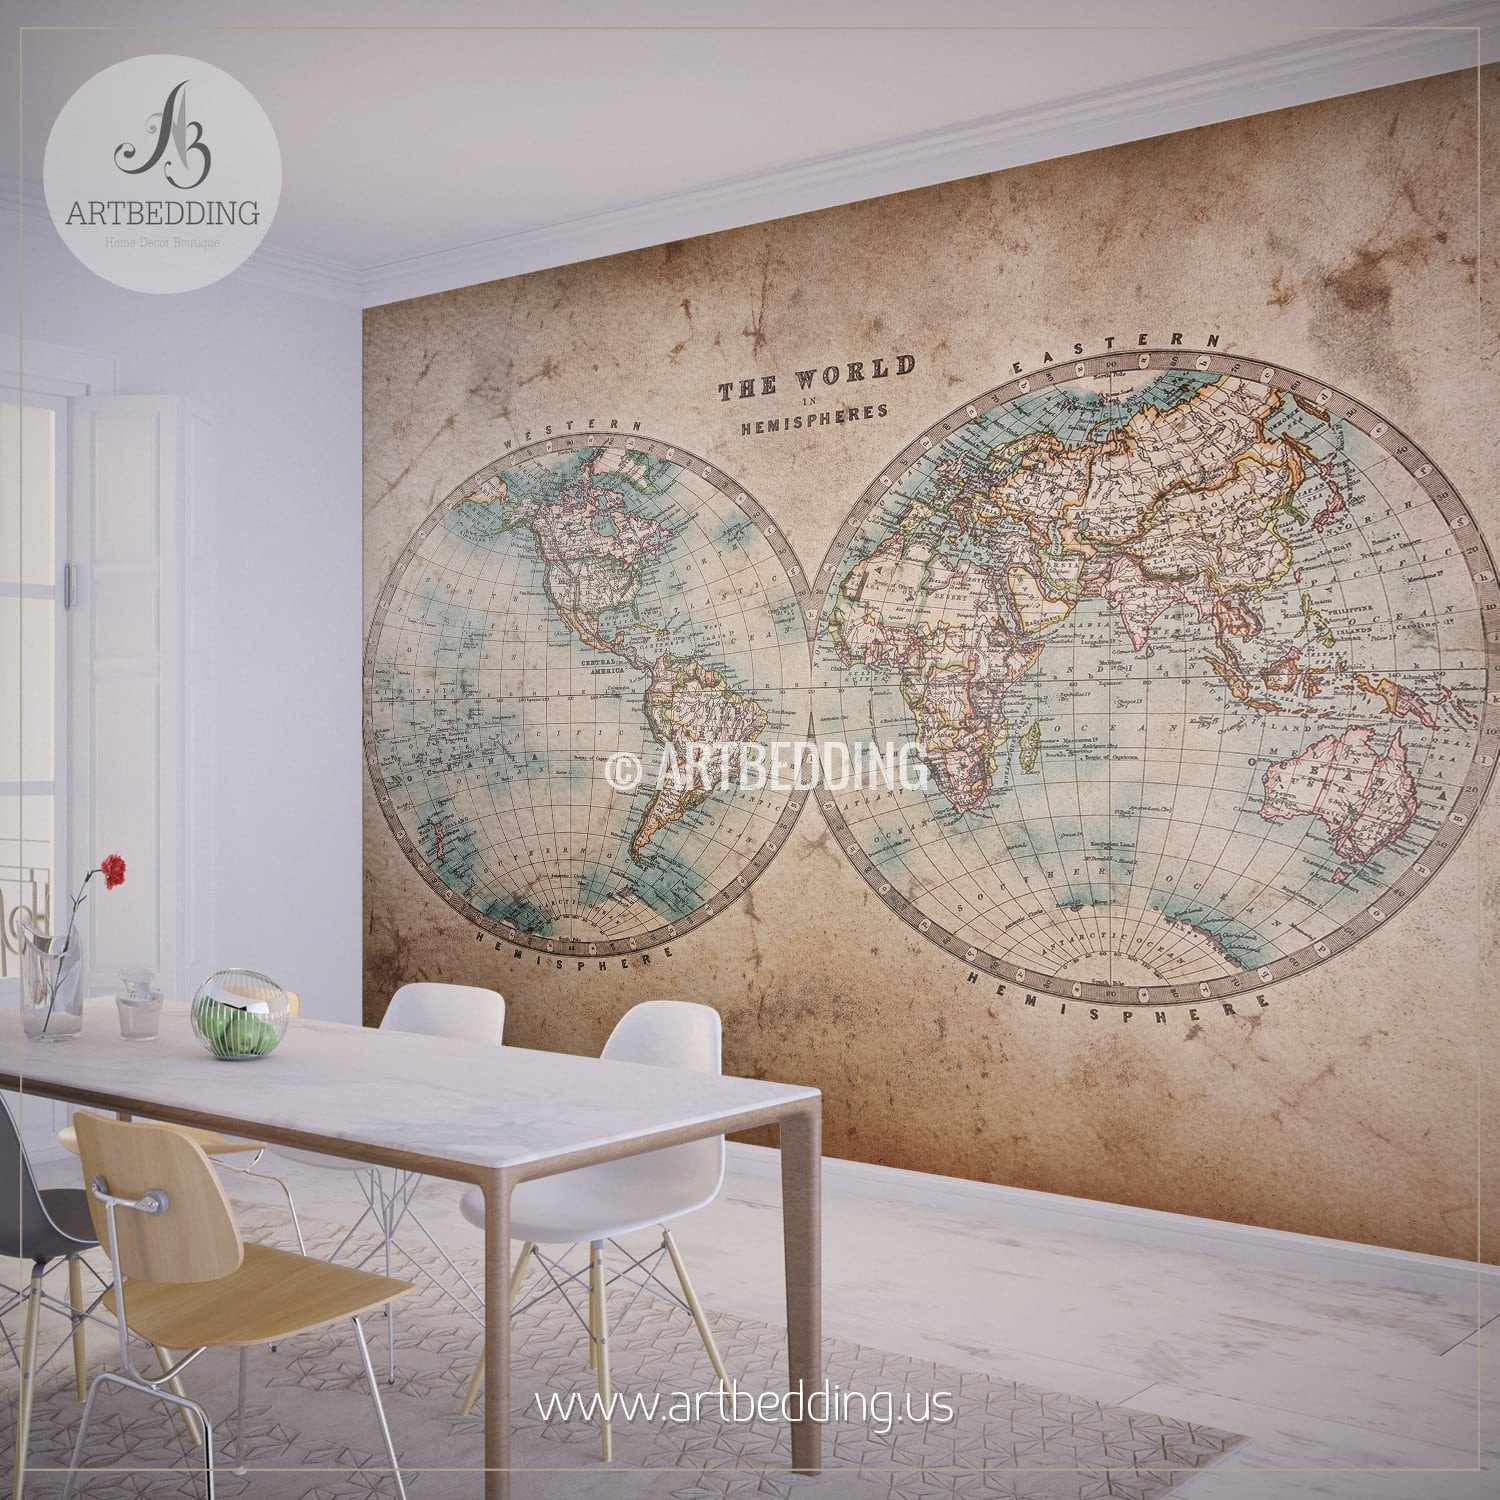 Vintage map wall mural self adhesive photo mural artbedding genuine stained world map from mid 1800s hemisphere wall mural self adhesive peel stick amipublicfo Gallery